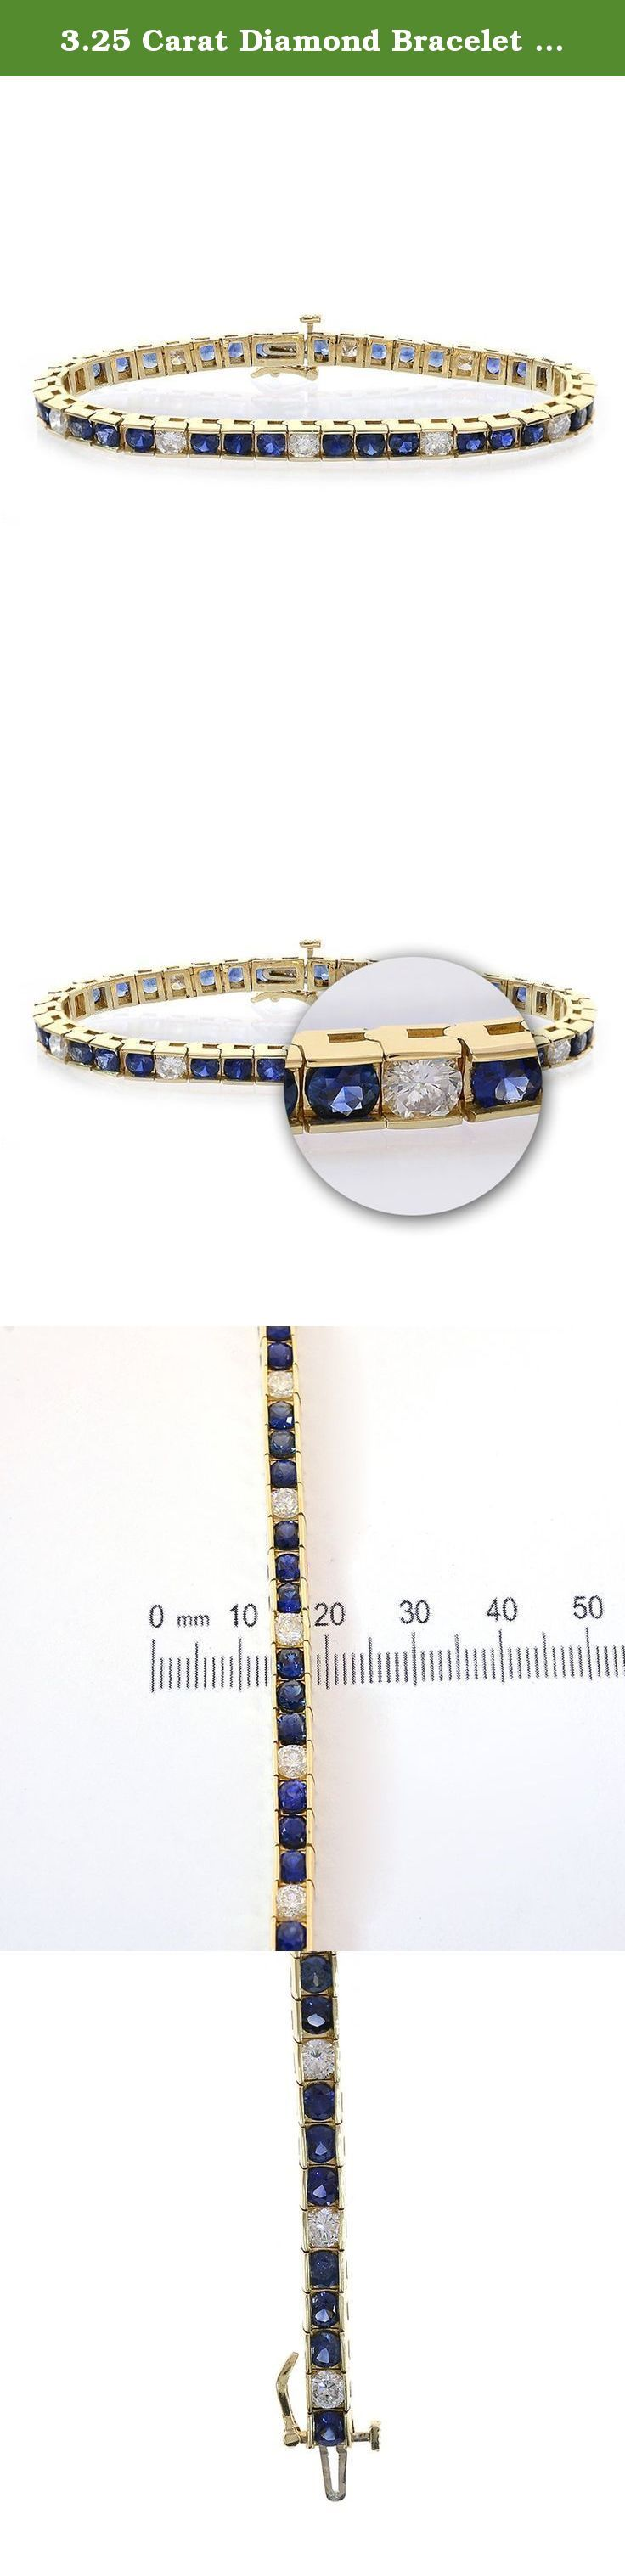 3.25 Carat Diamond Bracelet With 7.50 Carat Sapphire Channel Set 14k Yellow Gold. This beautiful eternity ceylon sapphire and diamond bracelet is crafted in 14k yellow gold, channel-set straight line bracelet, with vivid blue sapphire and sparkling natural round cut diamonds. The clean line and elegant glamour of this eternity diamond and sapphire bracelet makes it a timeless treasure for every woman's jewelry wardrobe. Diamond is the April birthstone. Sapphire is the September…